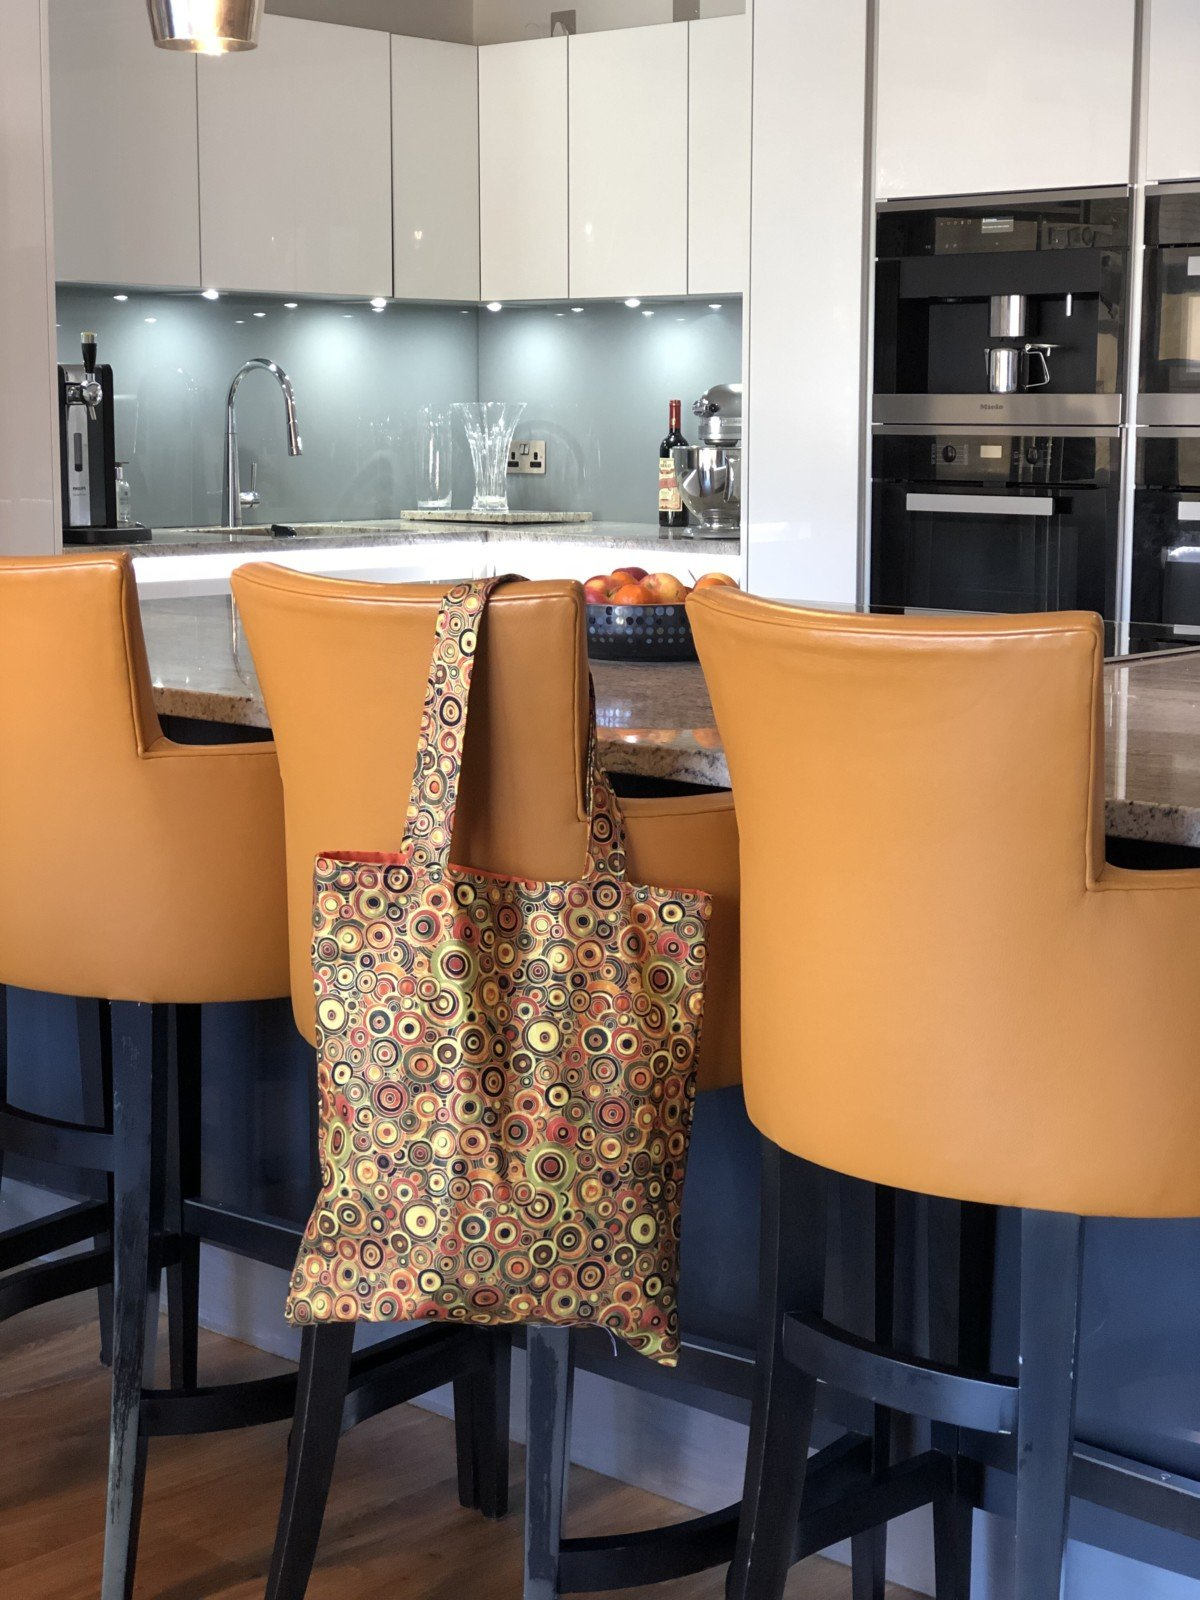 We also made a trendy tote bag to carry it all home in. I love it sew much it even matches the kitchen! Home made tote bag made in Essex